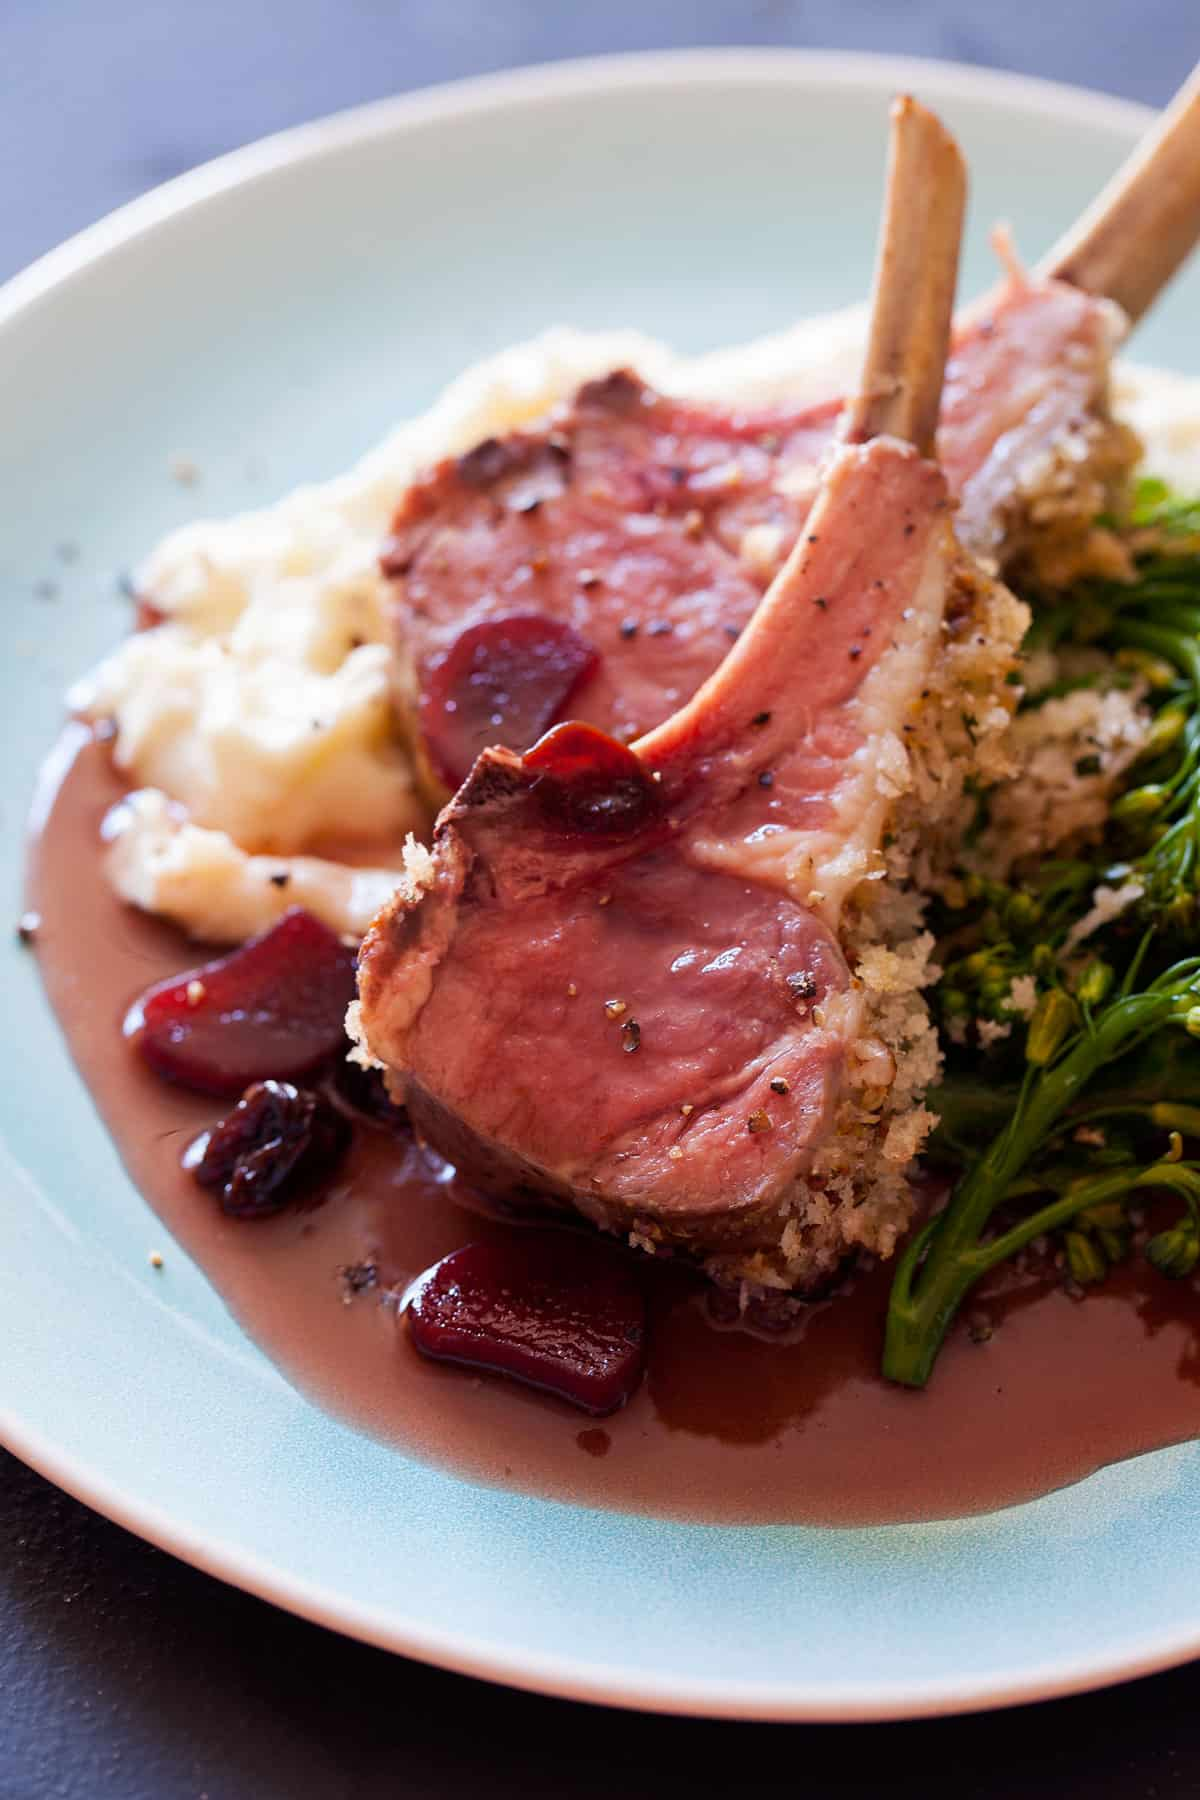 Roasted Rack of Lamb & Rhubarb Sour Cherry Gastrique